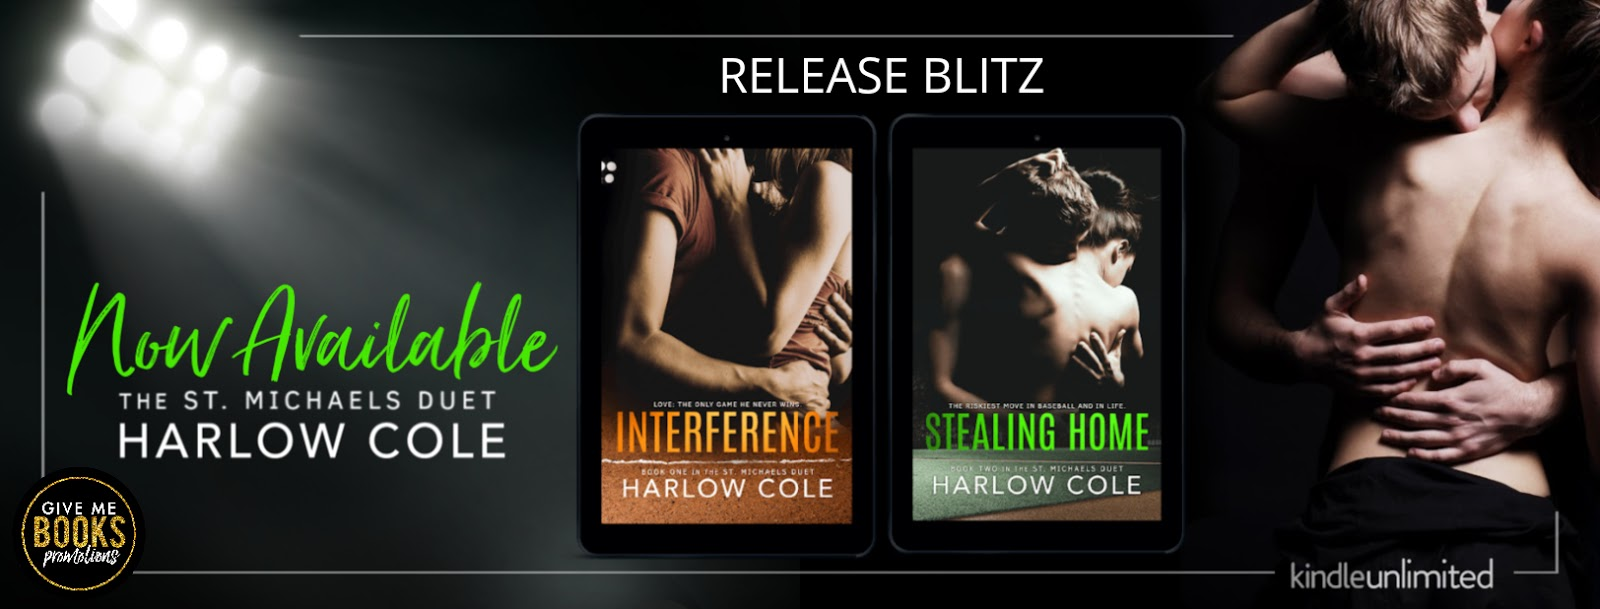 Give Me Books Release Blitz Stealing Home By Harlow Cole